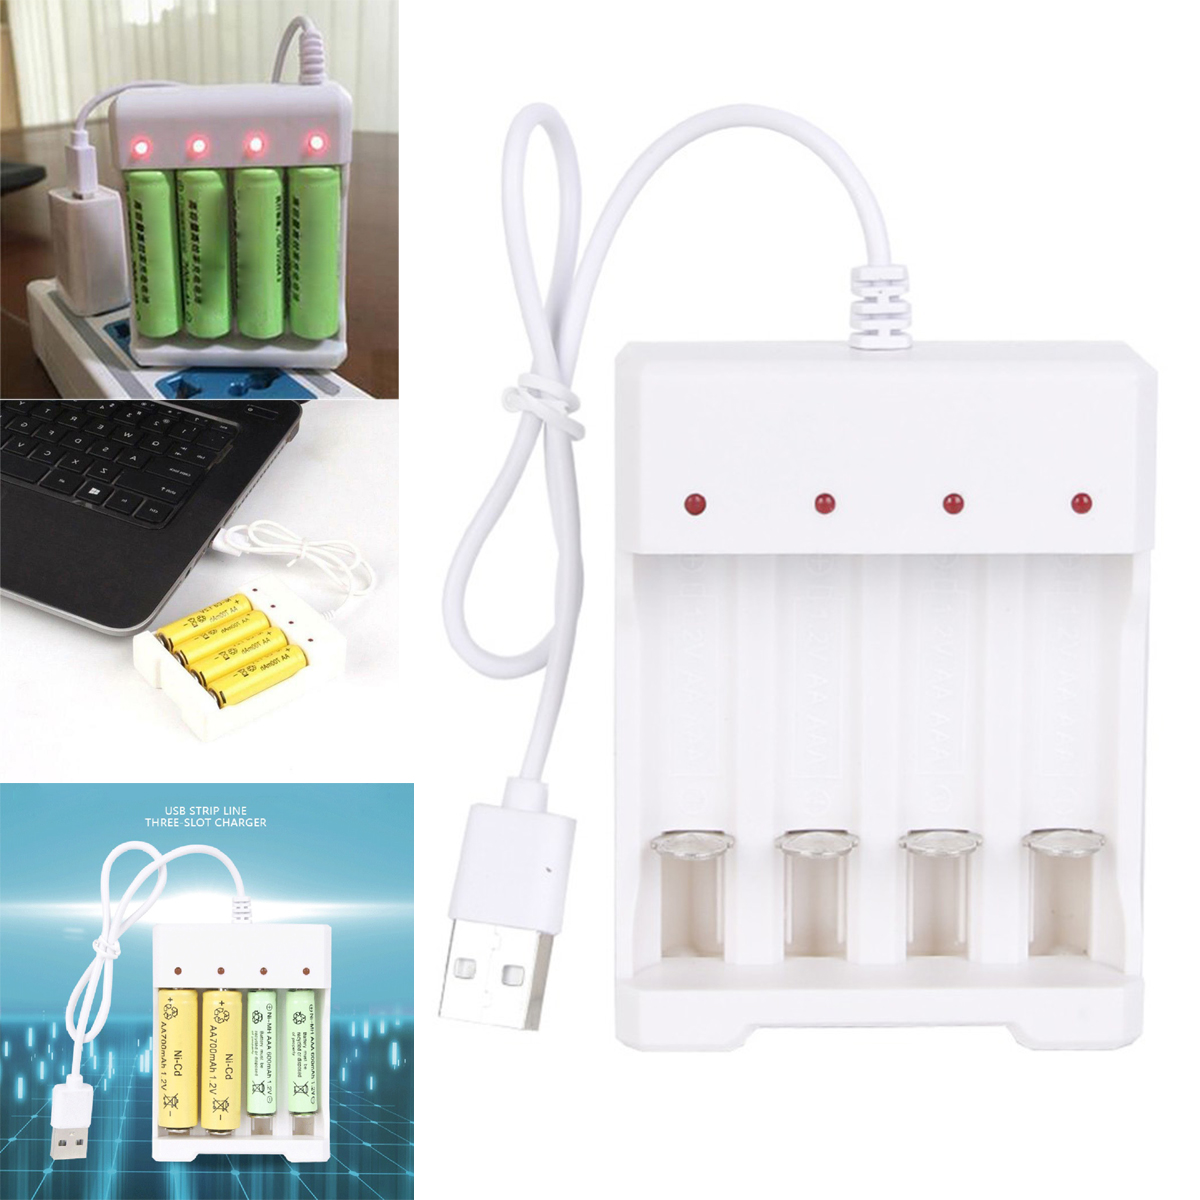 USB Fast Charging Li-ion//Ni-MH Battery Charger For AA//AAA Battery White 4 Slots